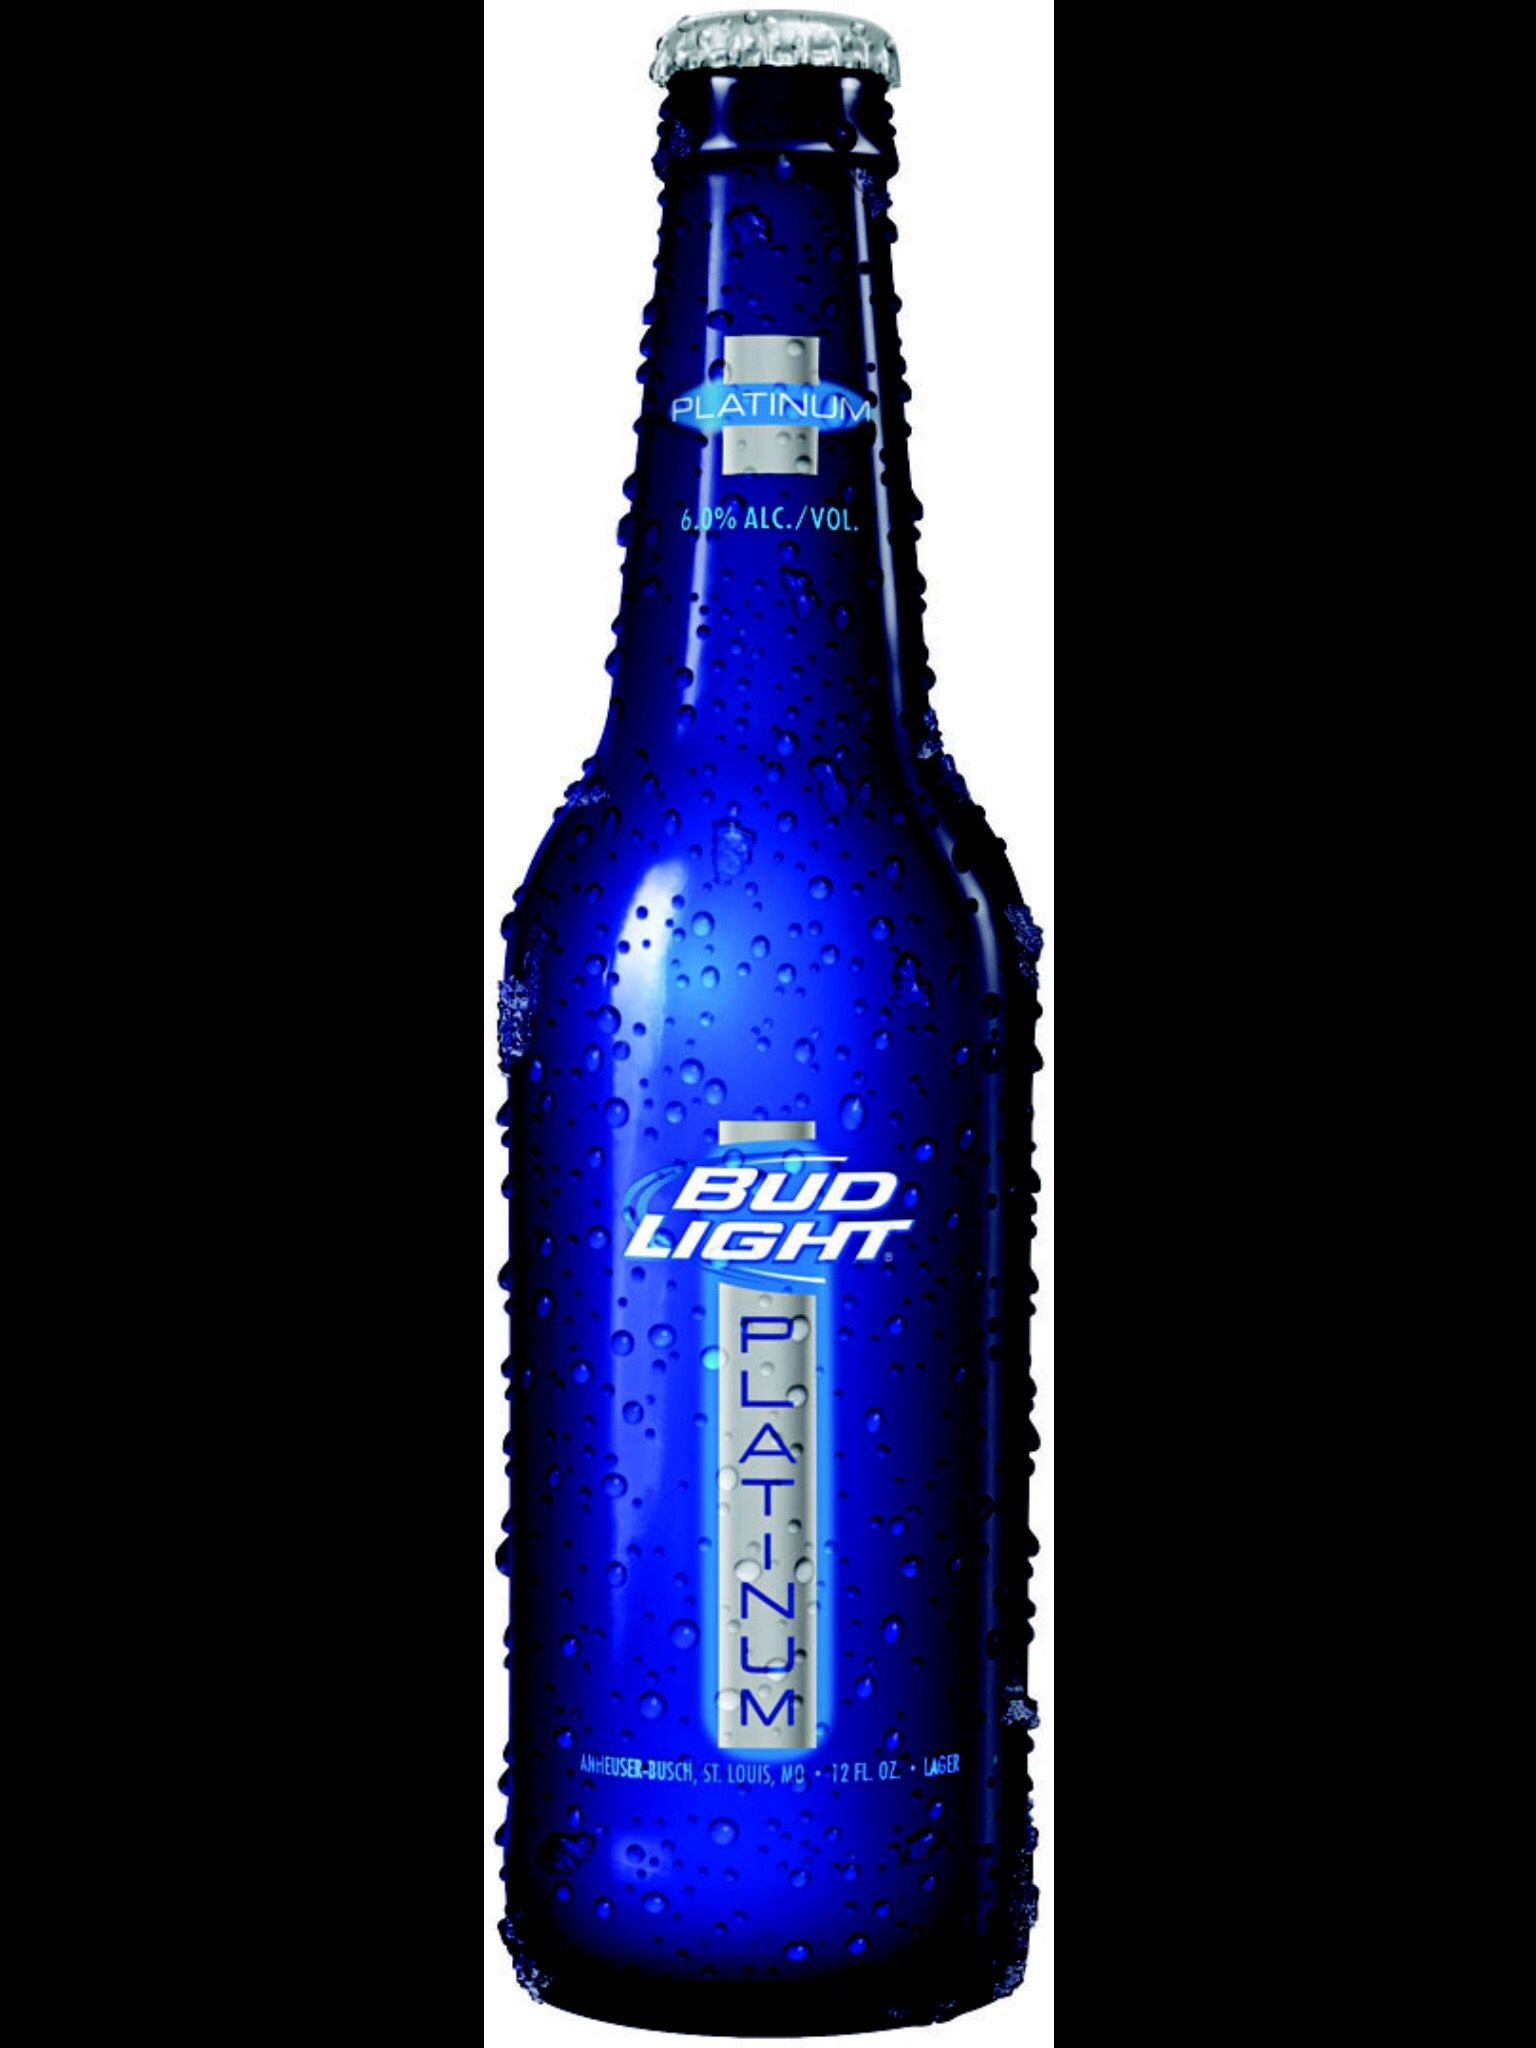 platinum budlight bud light pablo post velez